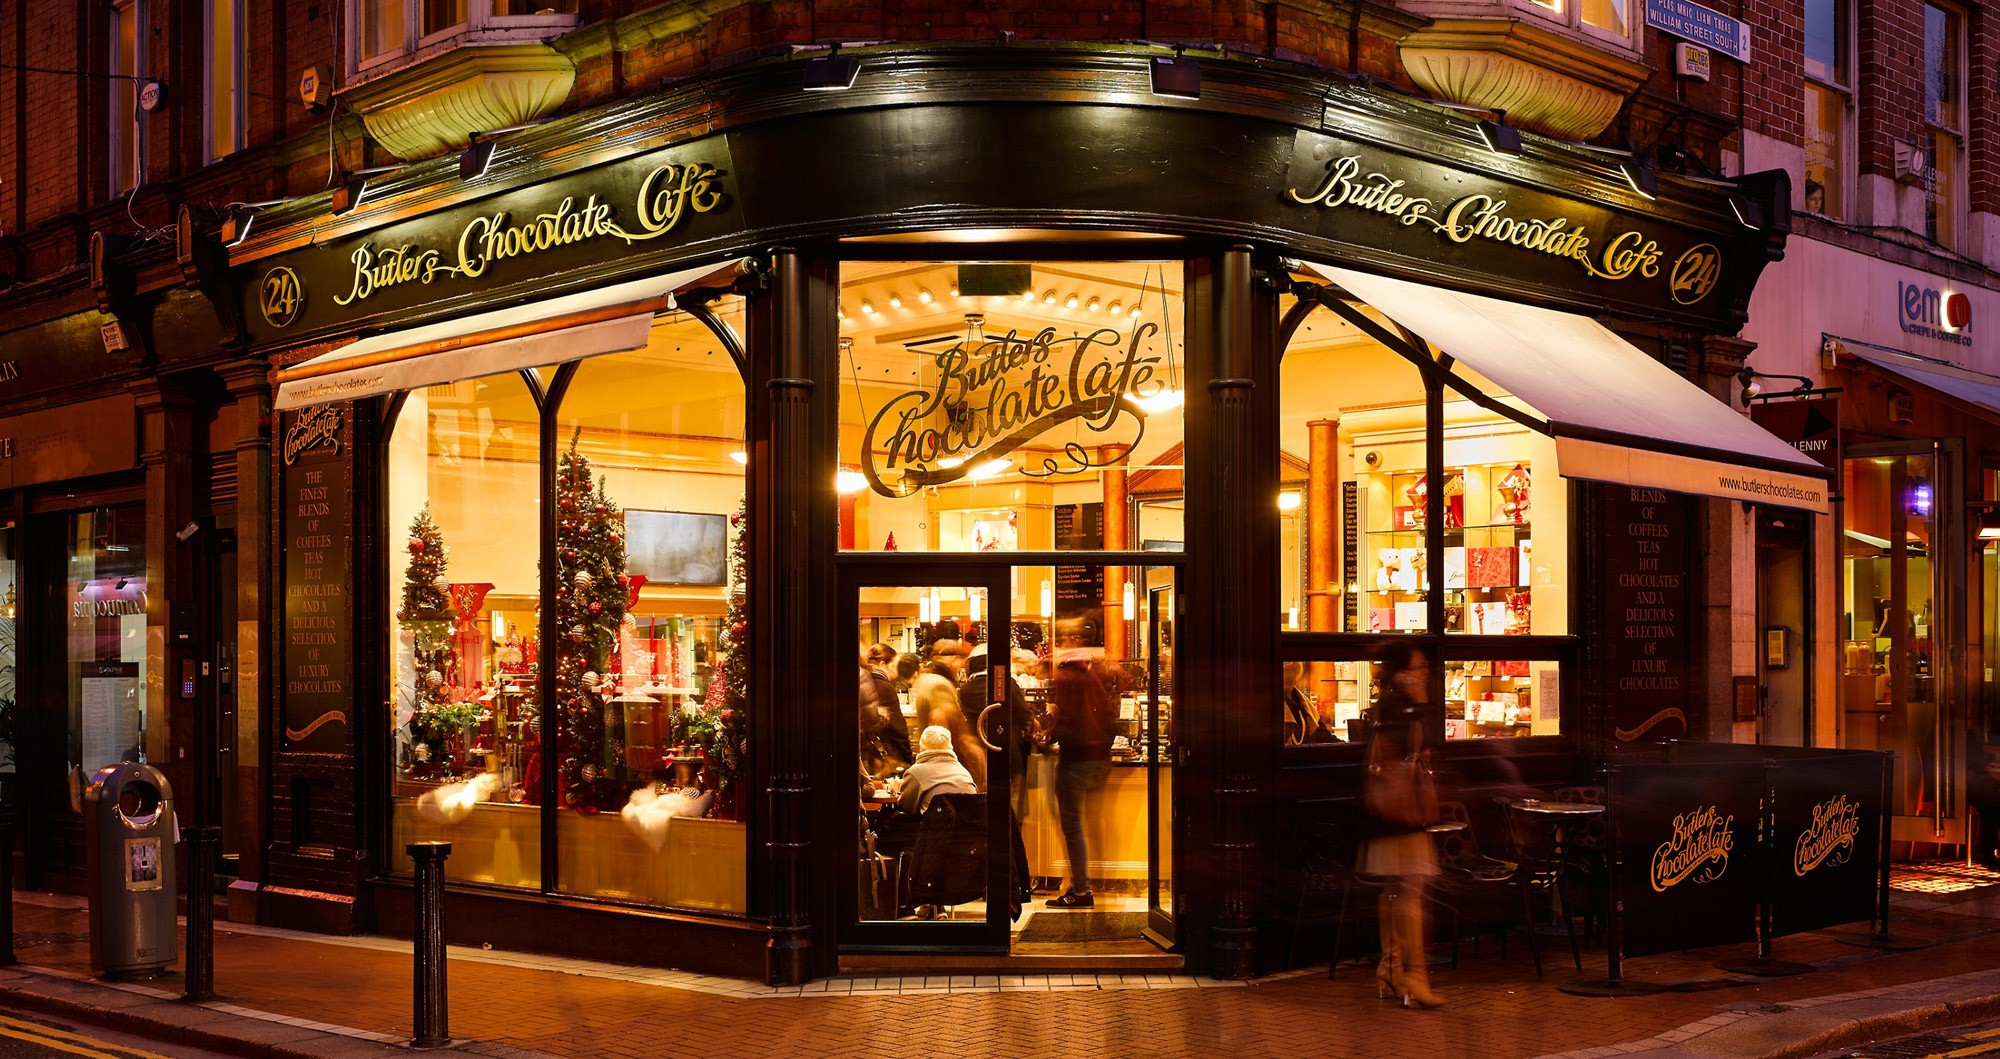 Butlers Chocolates Wicklow Street, Dublin 2